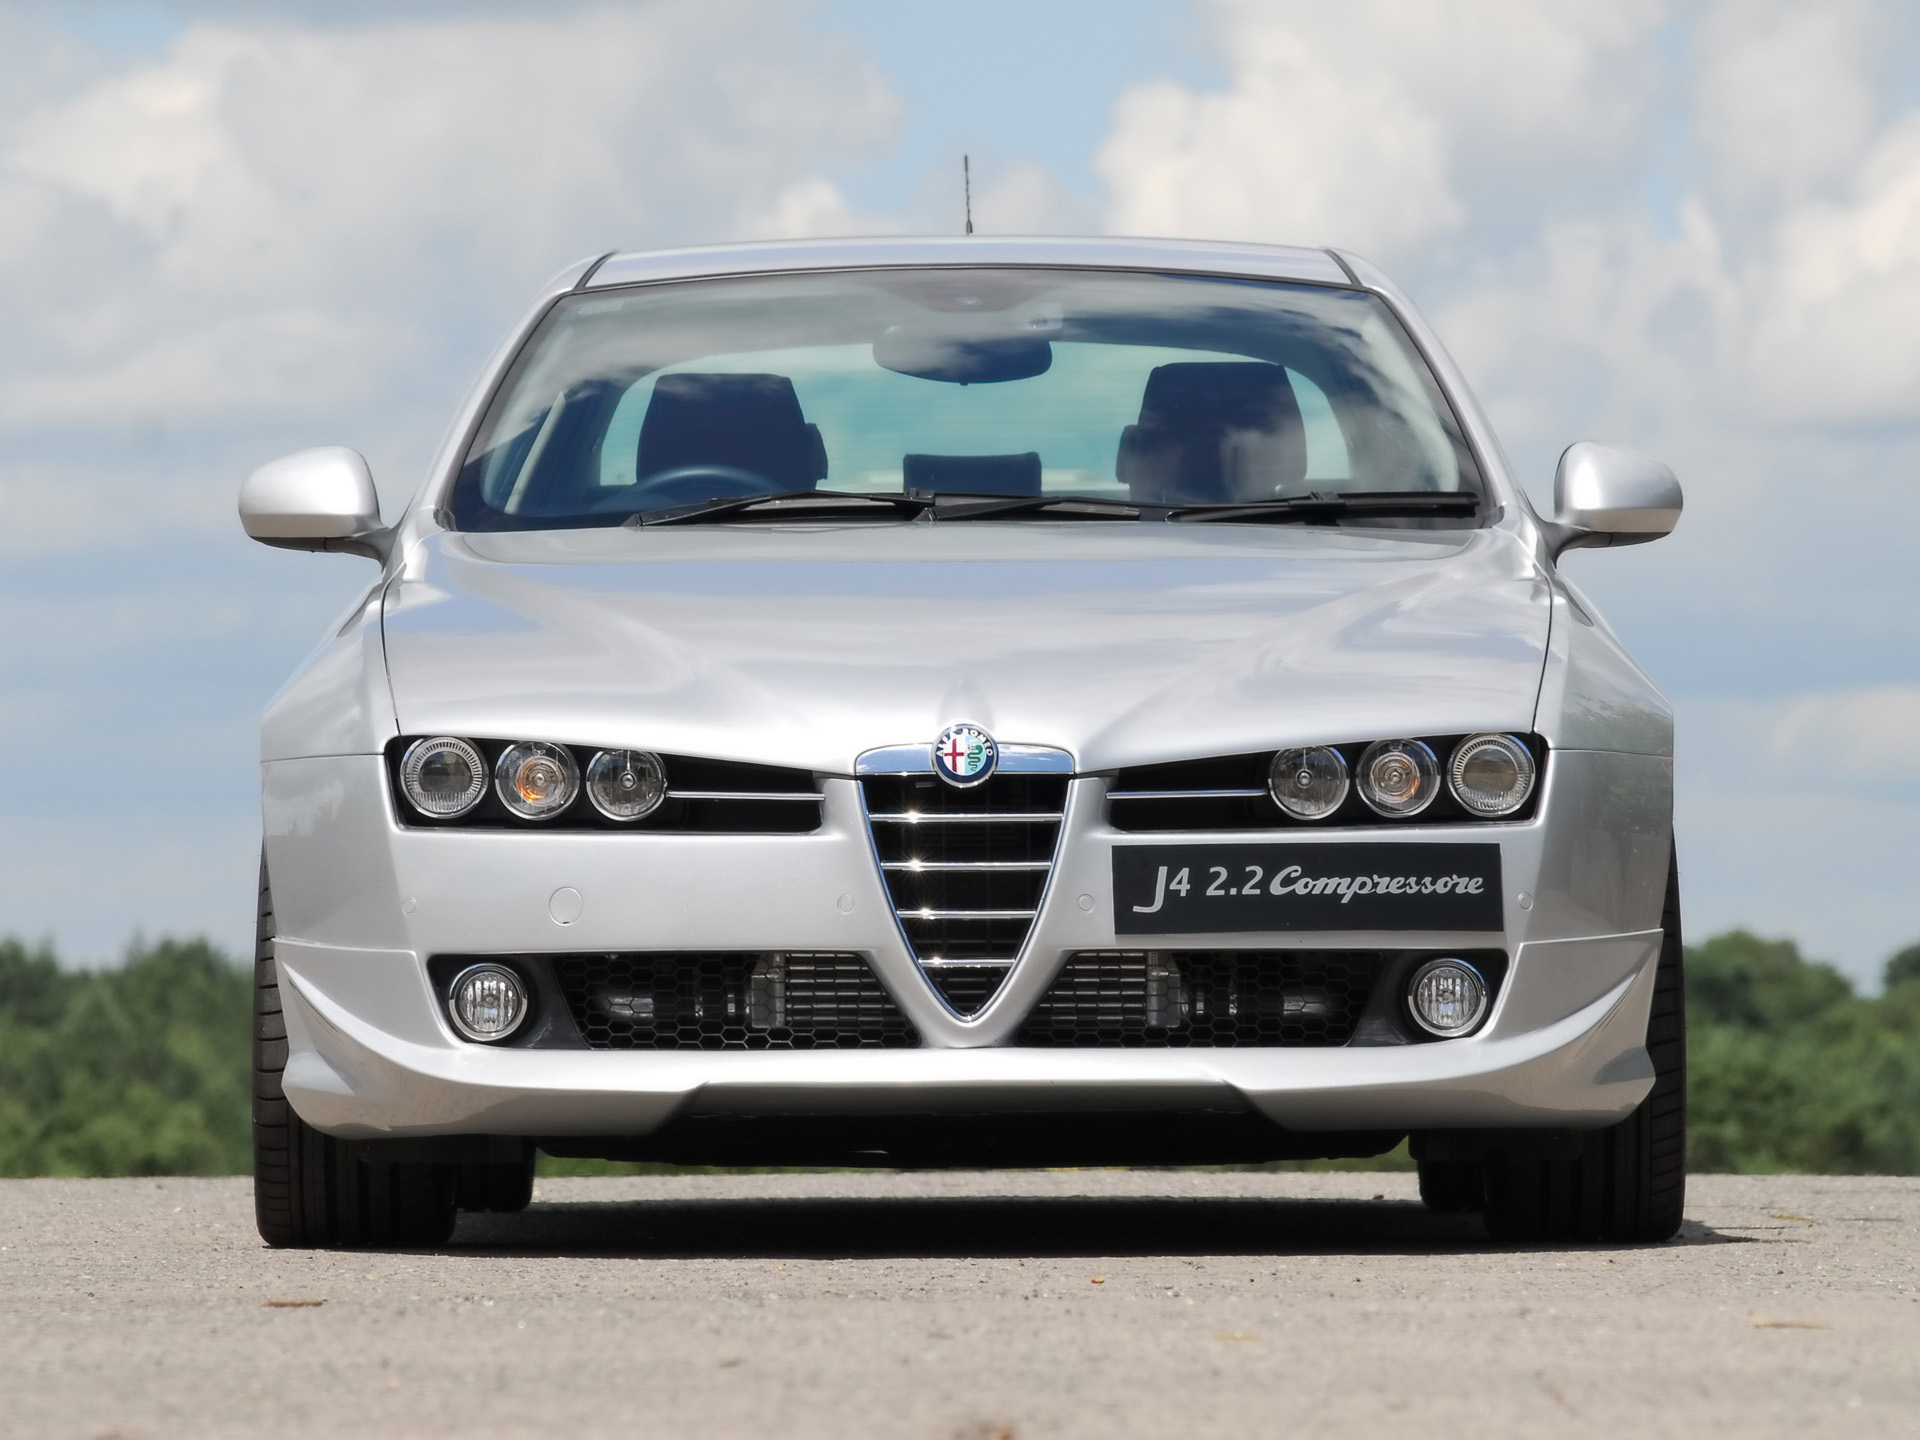 Alfa Romeo 159 photo 57243